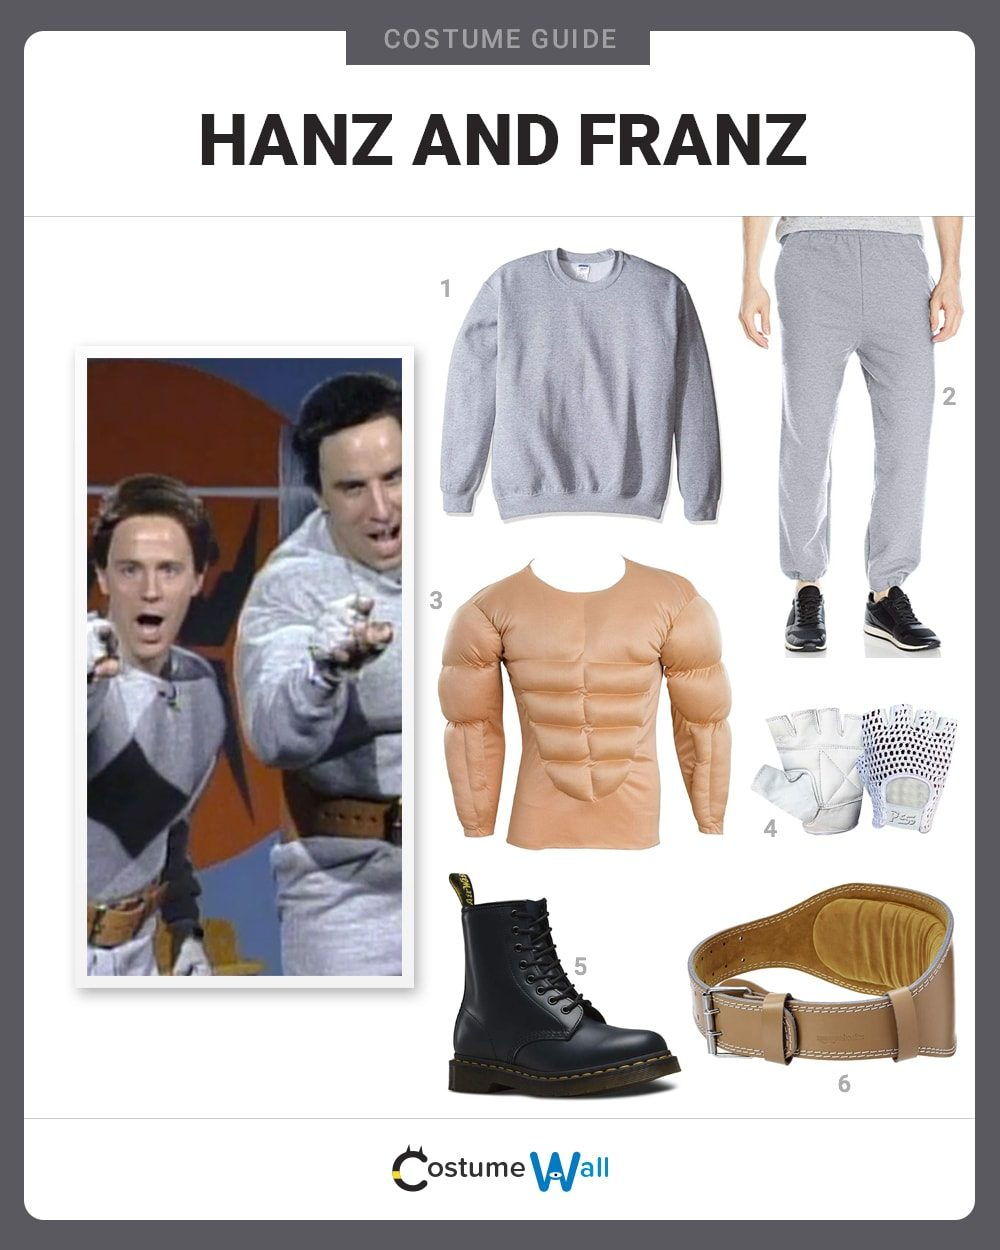 Hanz and Franz Costume Guide